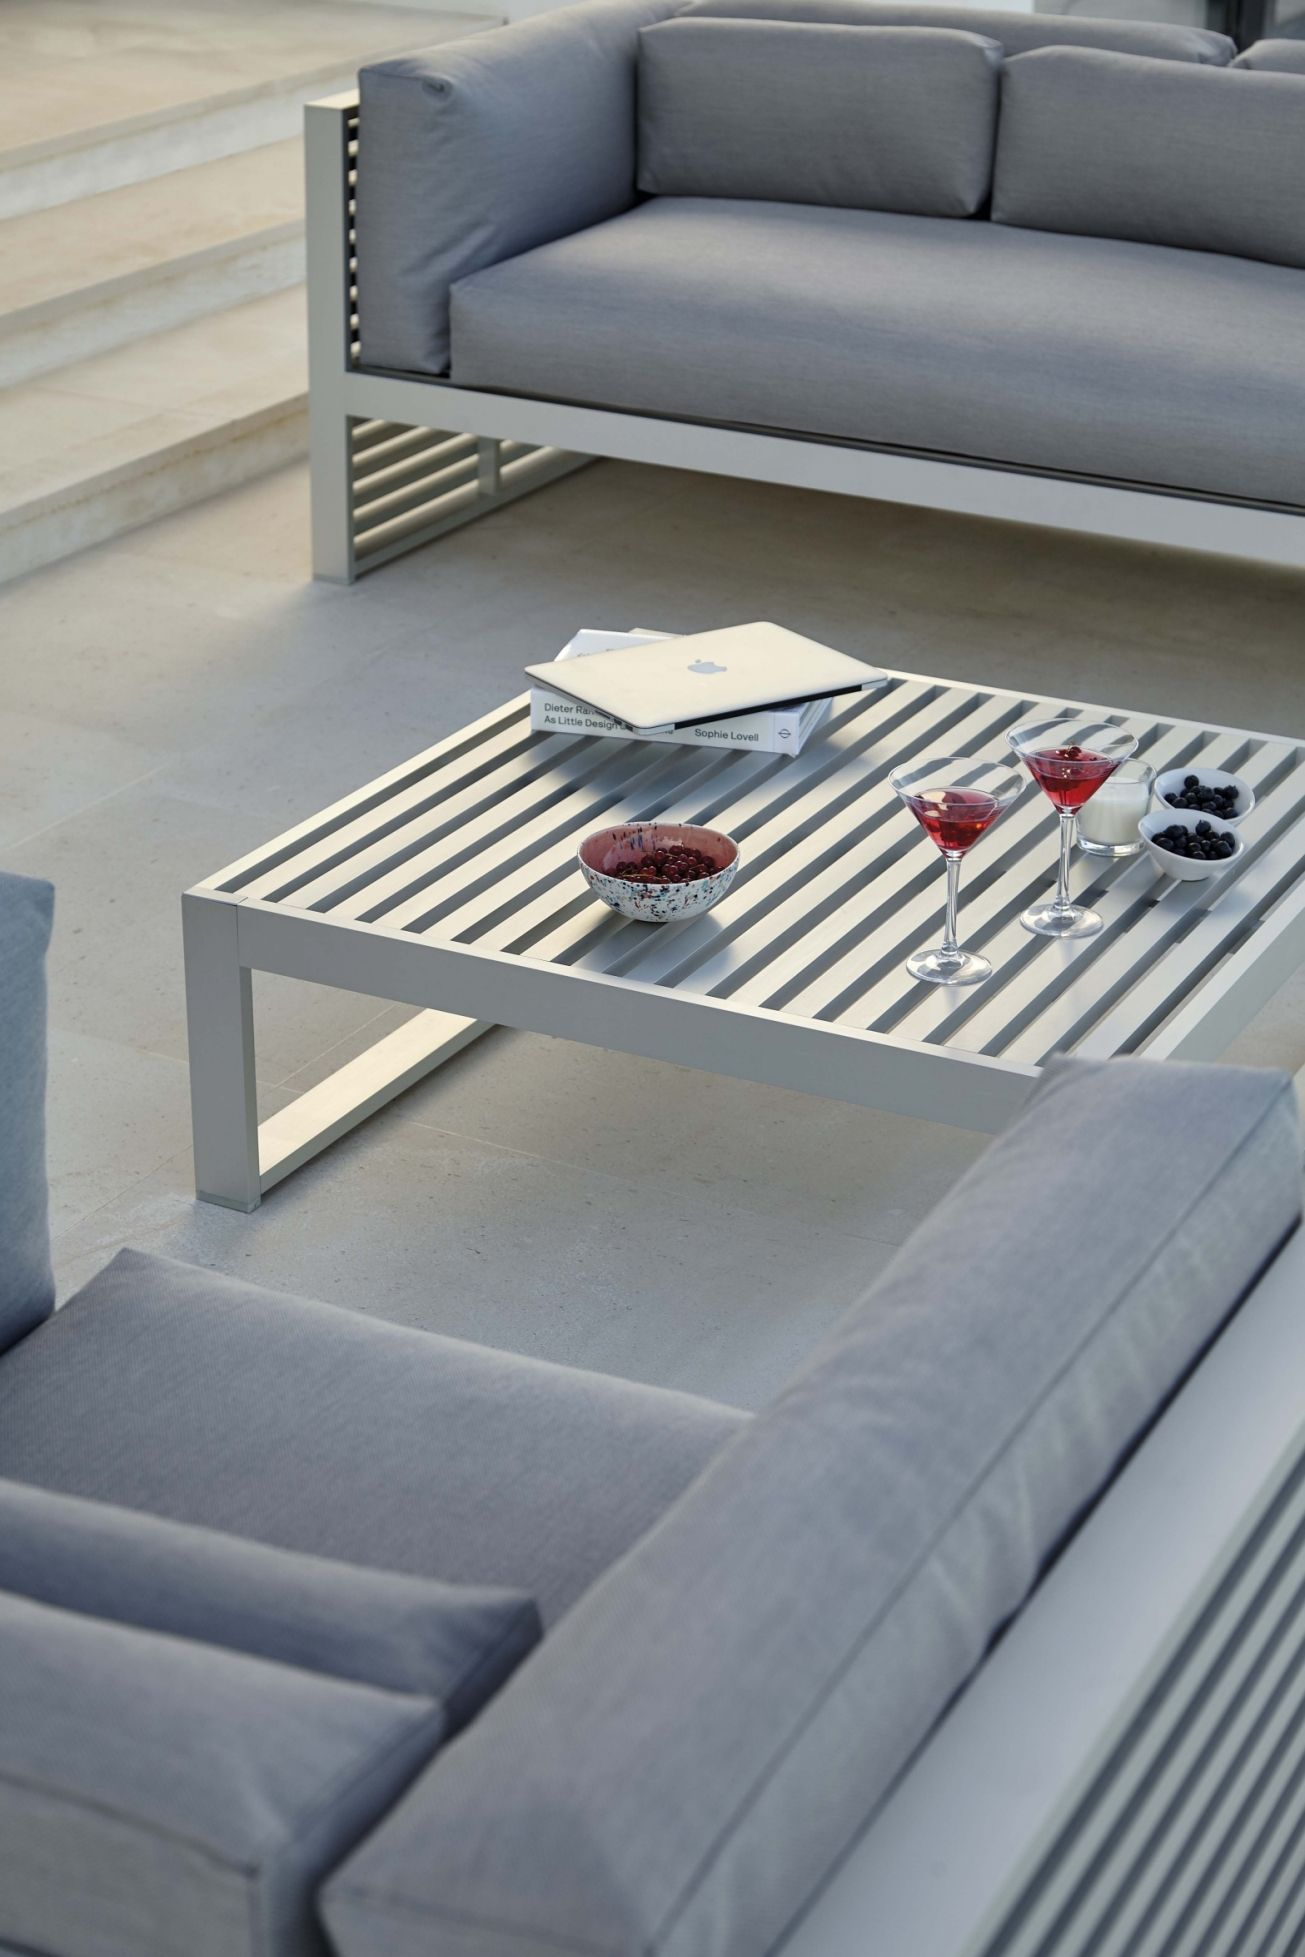 Dna Outdoor Low Table Furniture Outside Furniture Low Tables